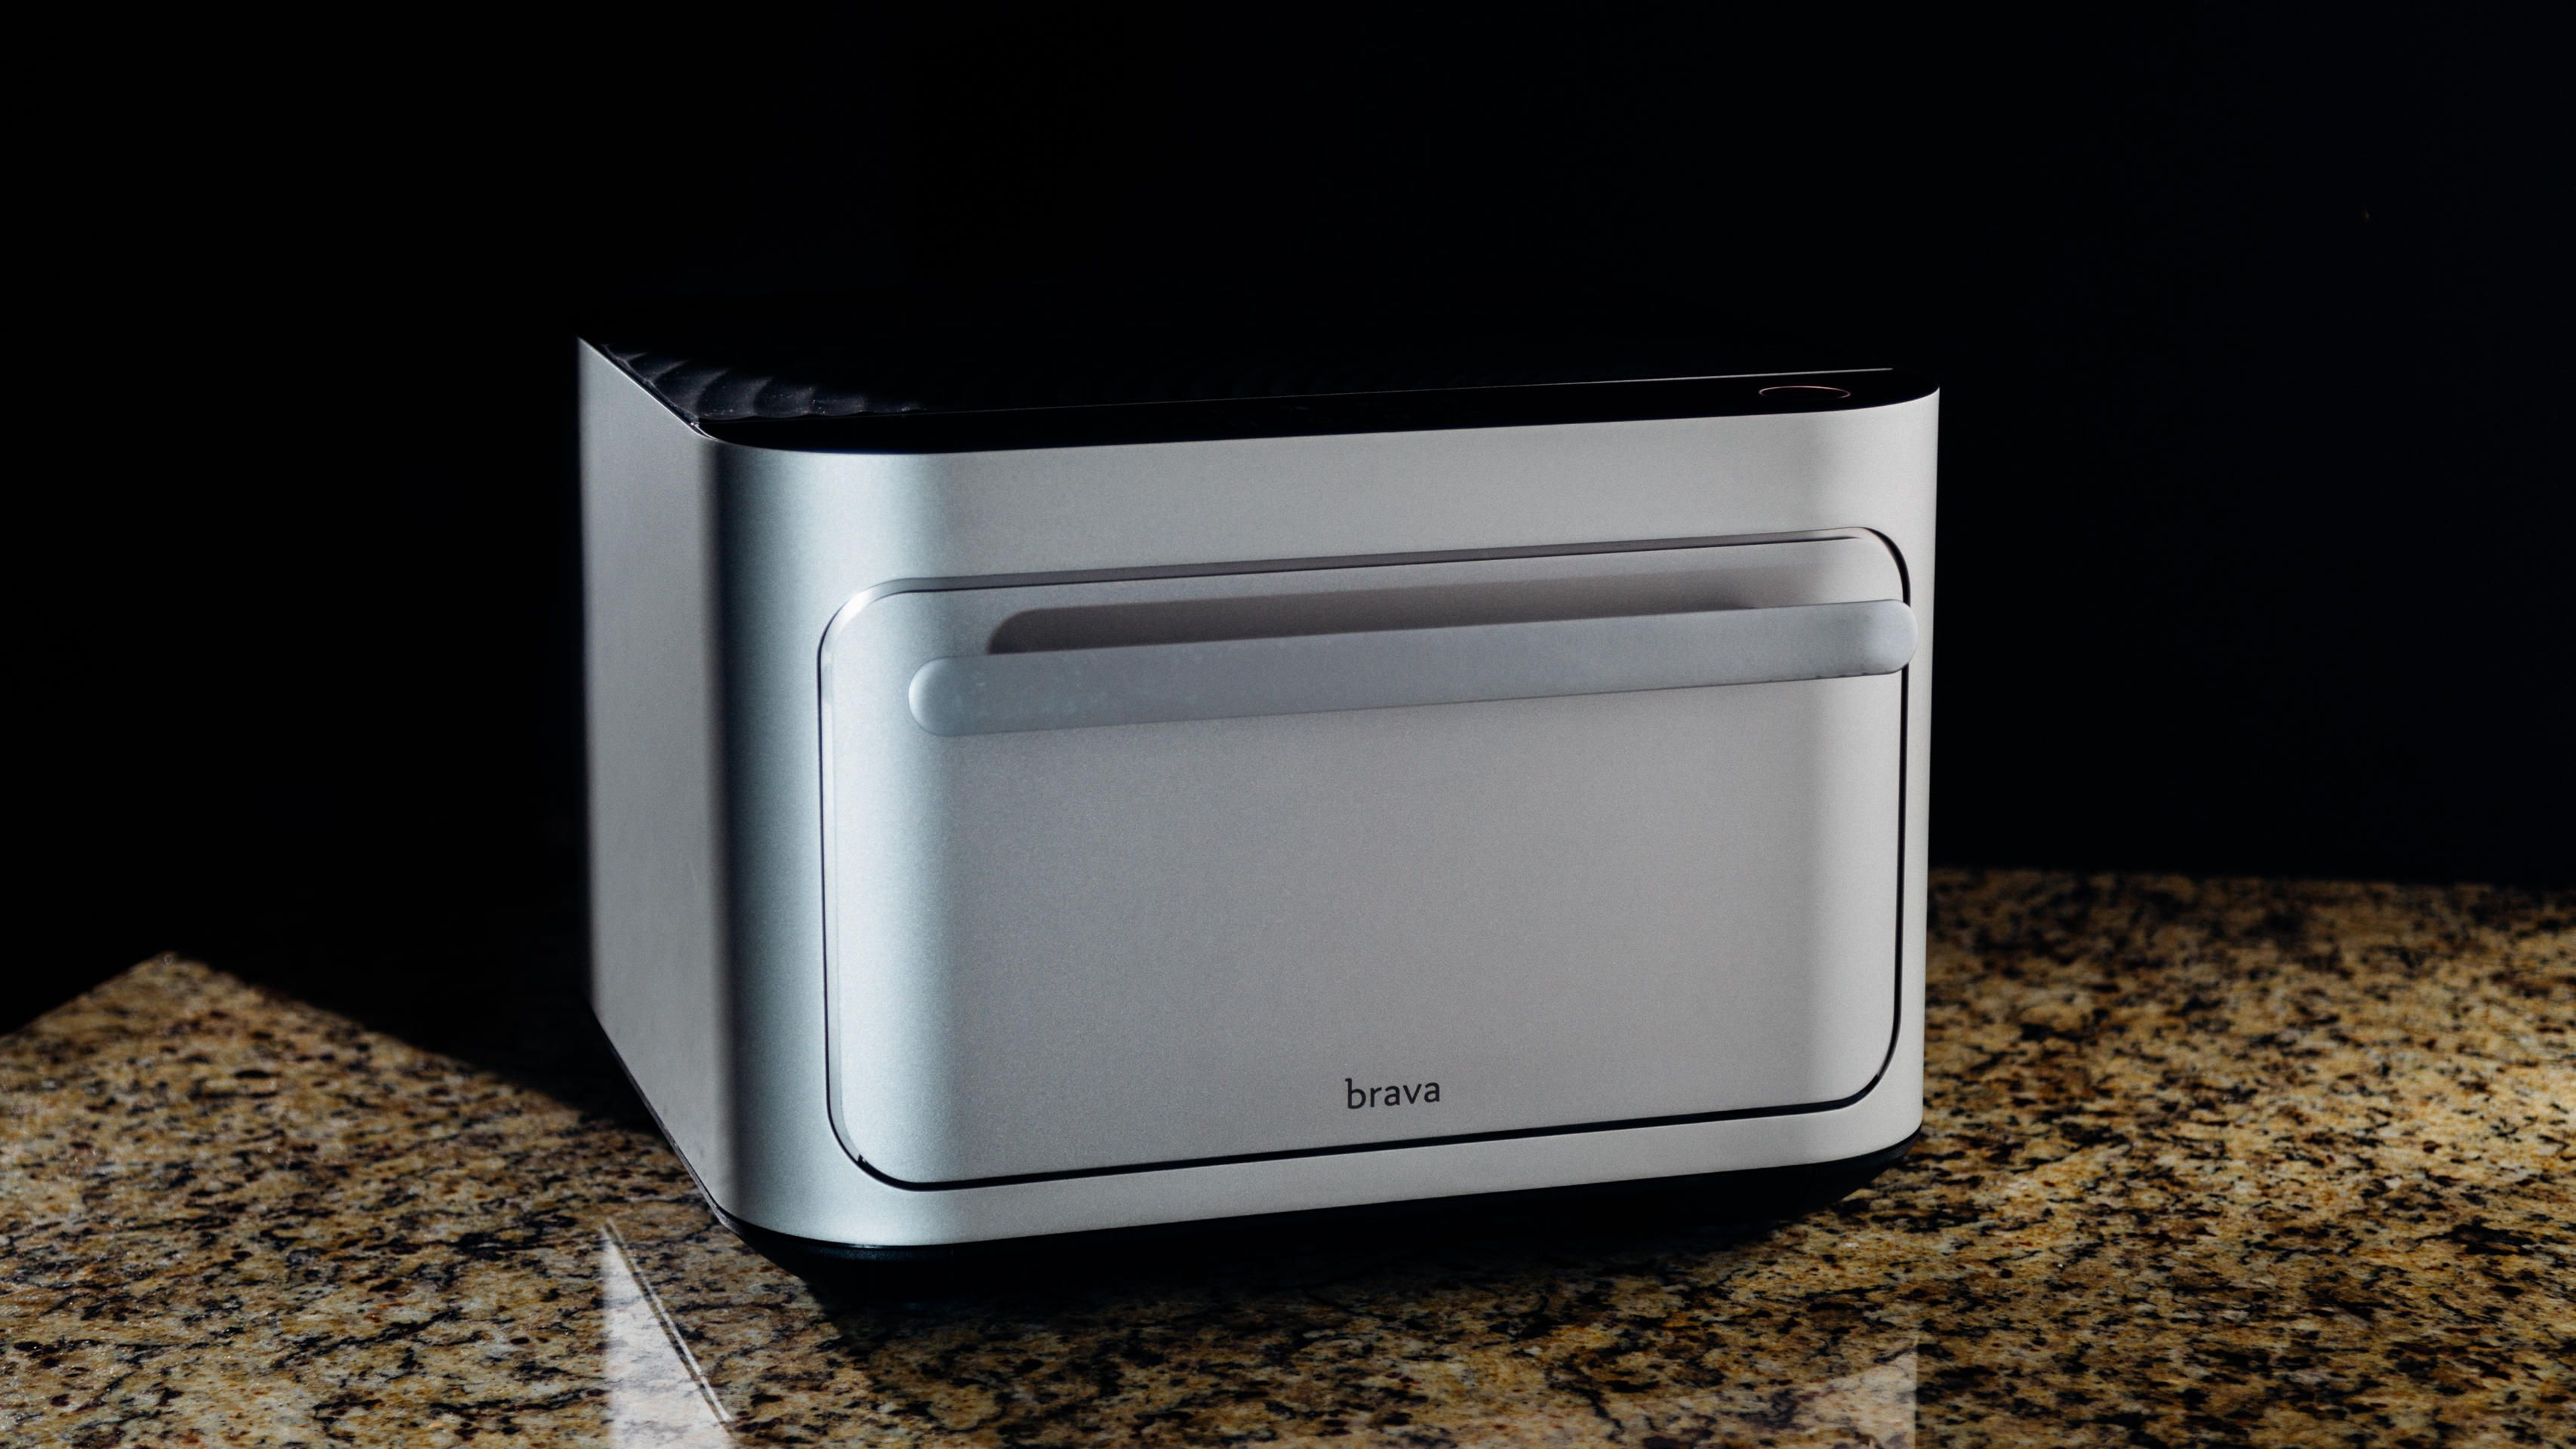 Brava Oven Review This Oven Sheds New Light On Alternative